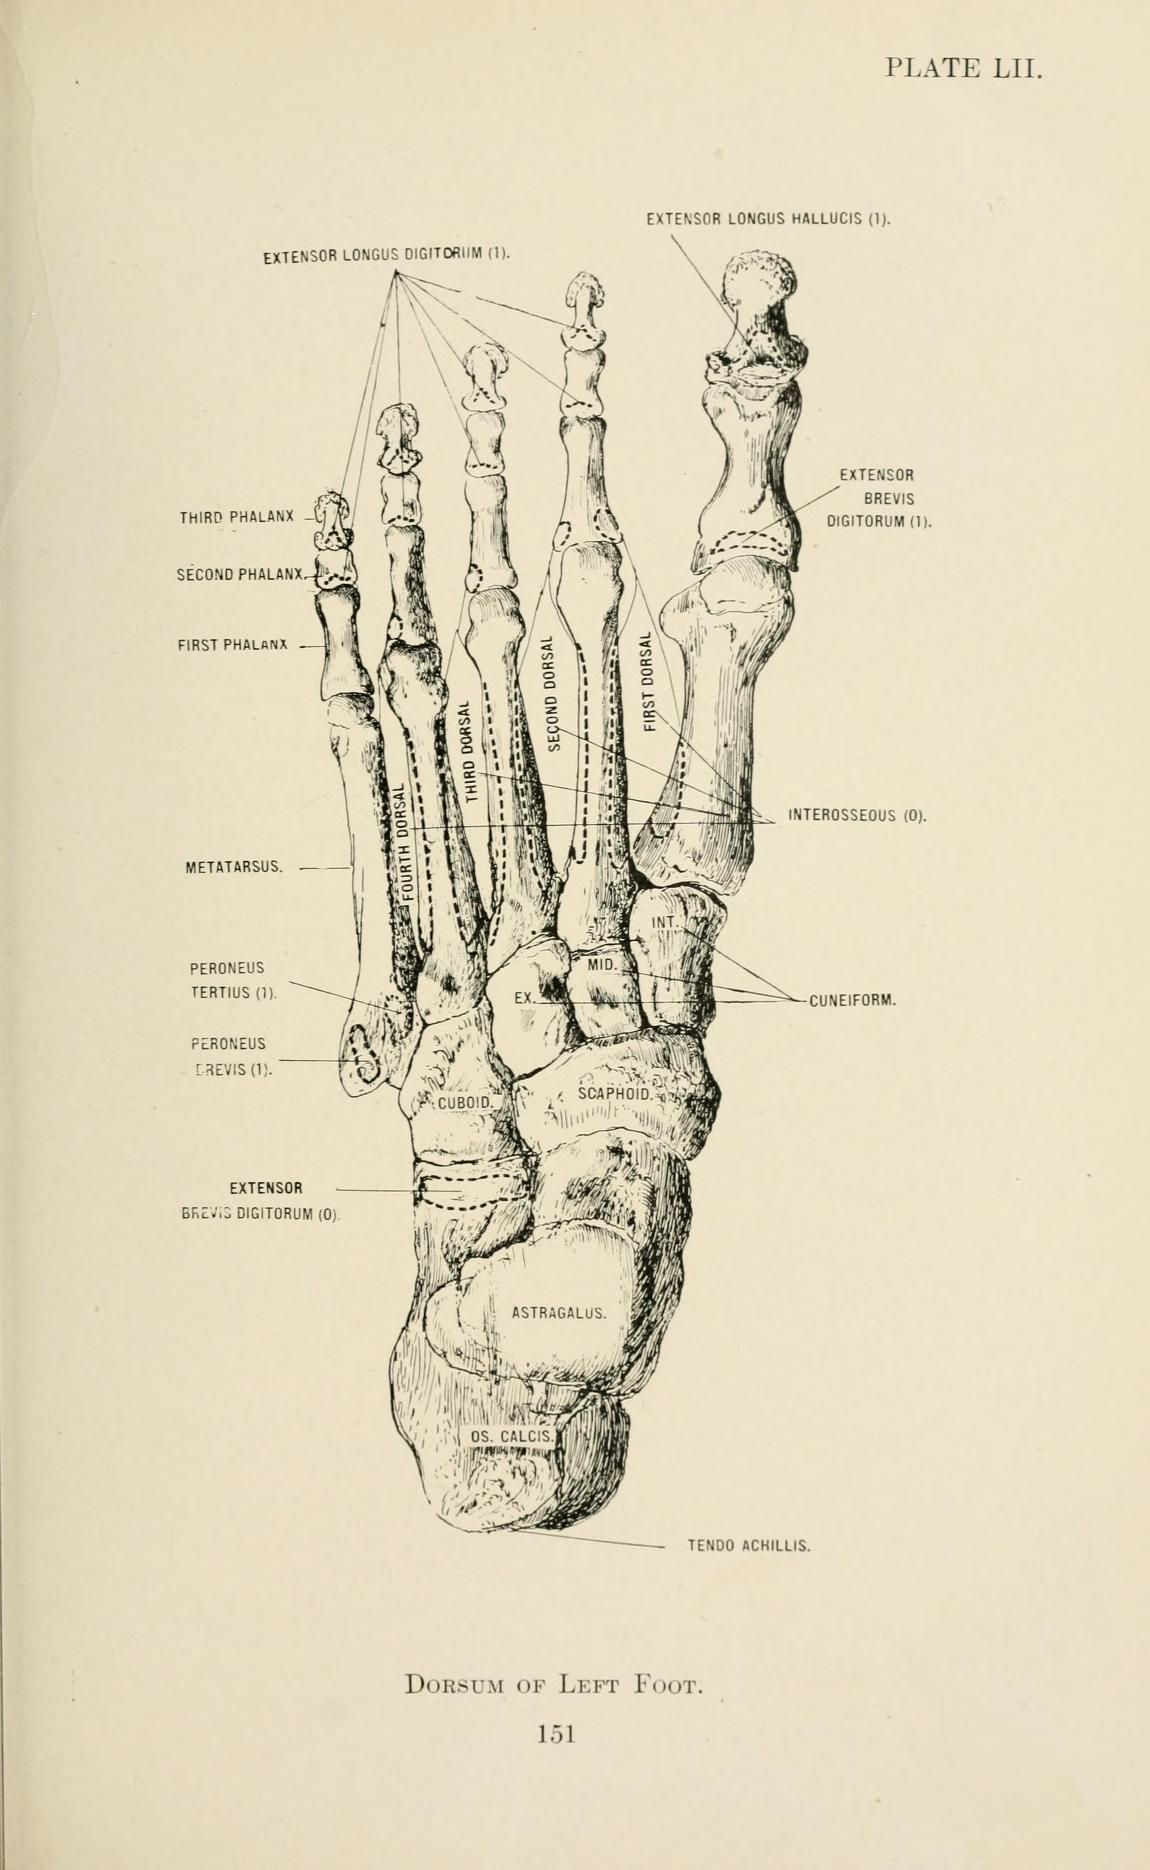 Anatomy in a nutshell   bones of the left foot labeled